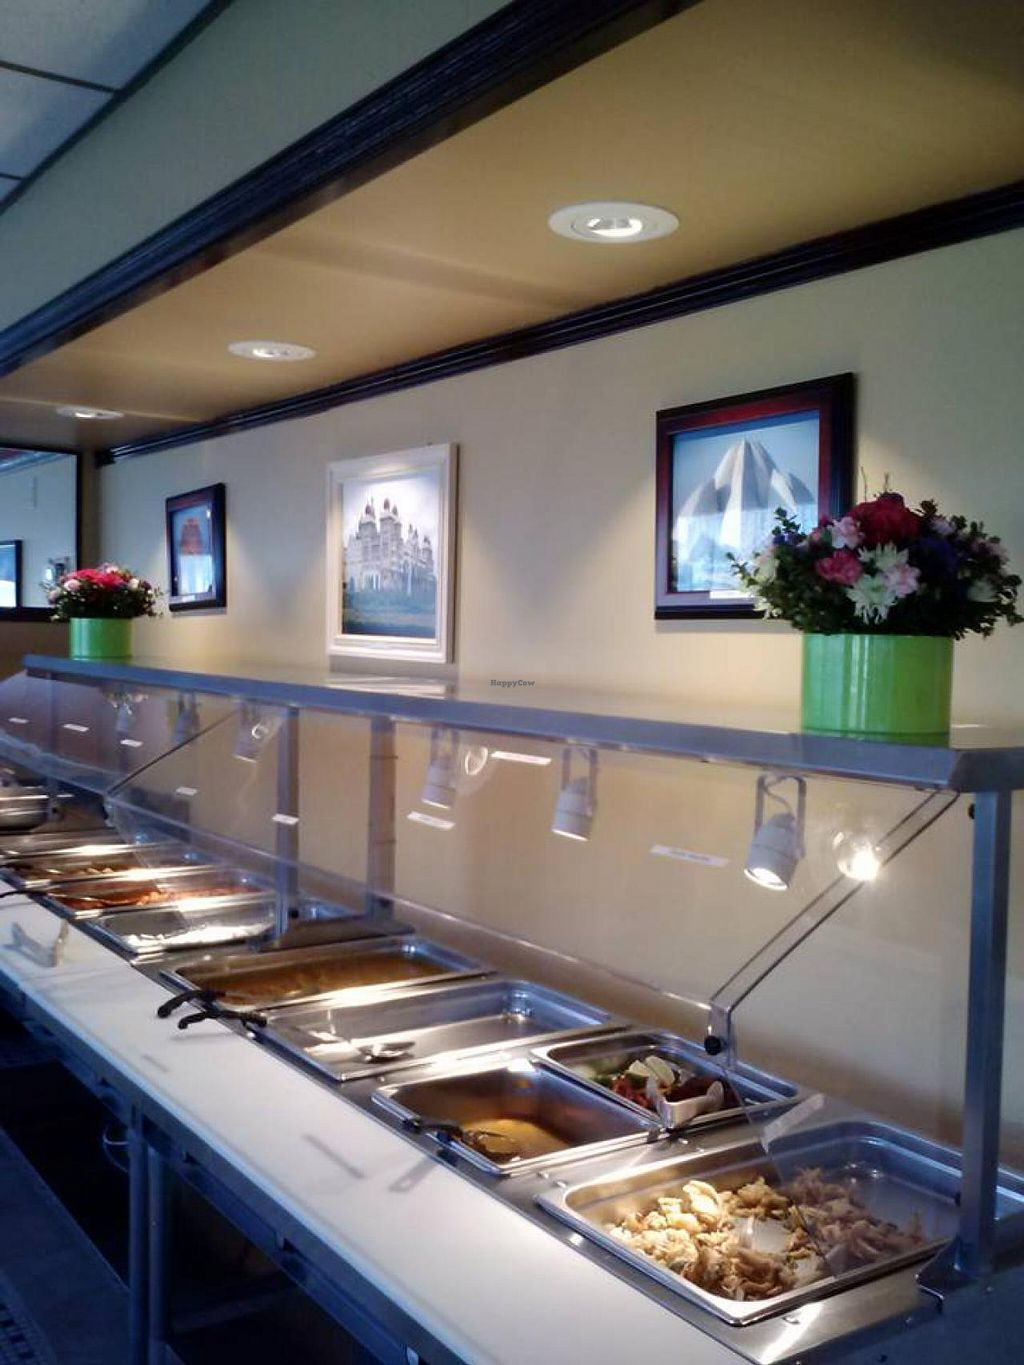 """Photo of Ganesh Indian Cuisine  by <a href=""""/members/profile/Meggie%20and%20Ben"""">Meggie and Ben</a> <br/>Lunch buffet <br/> August 15, 2014  - <a href='/contact/abuse/image/50342/77118'>Report</a>"""